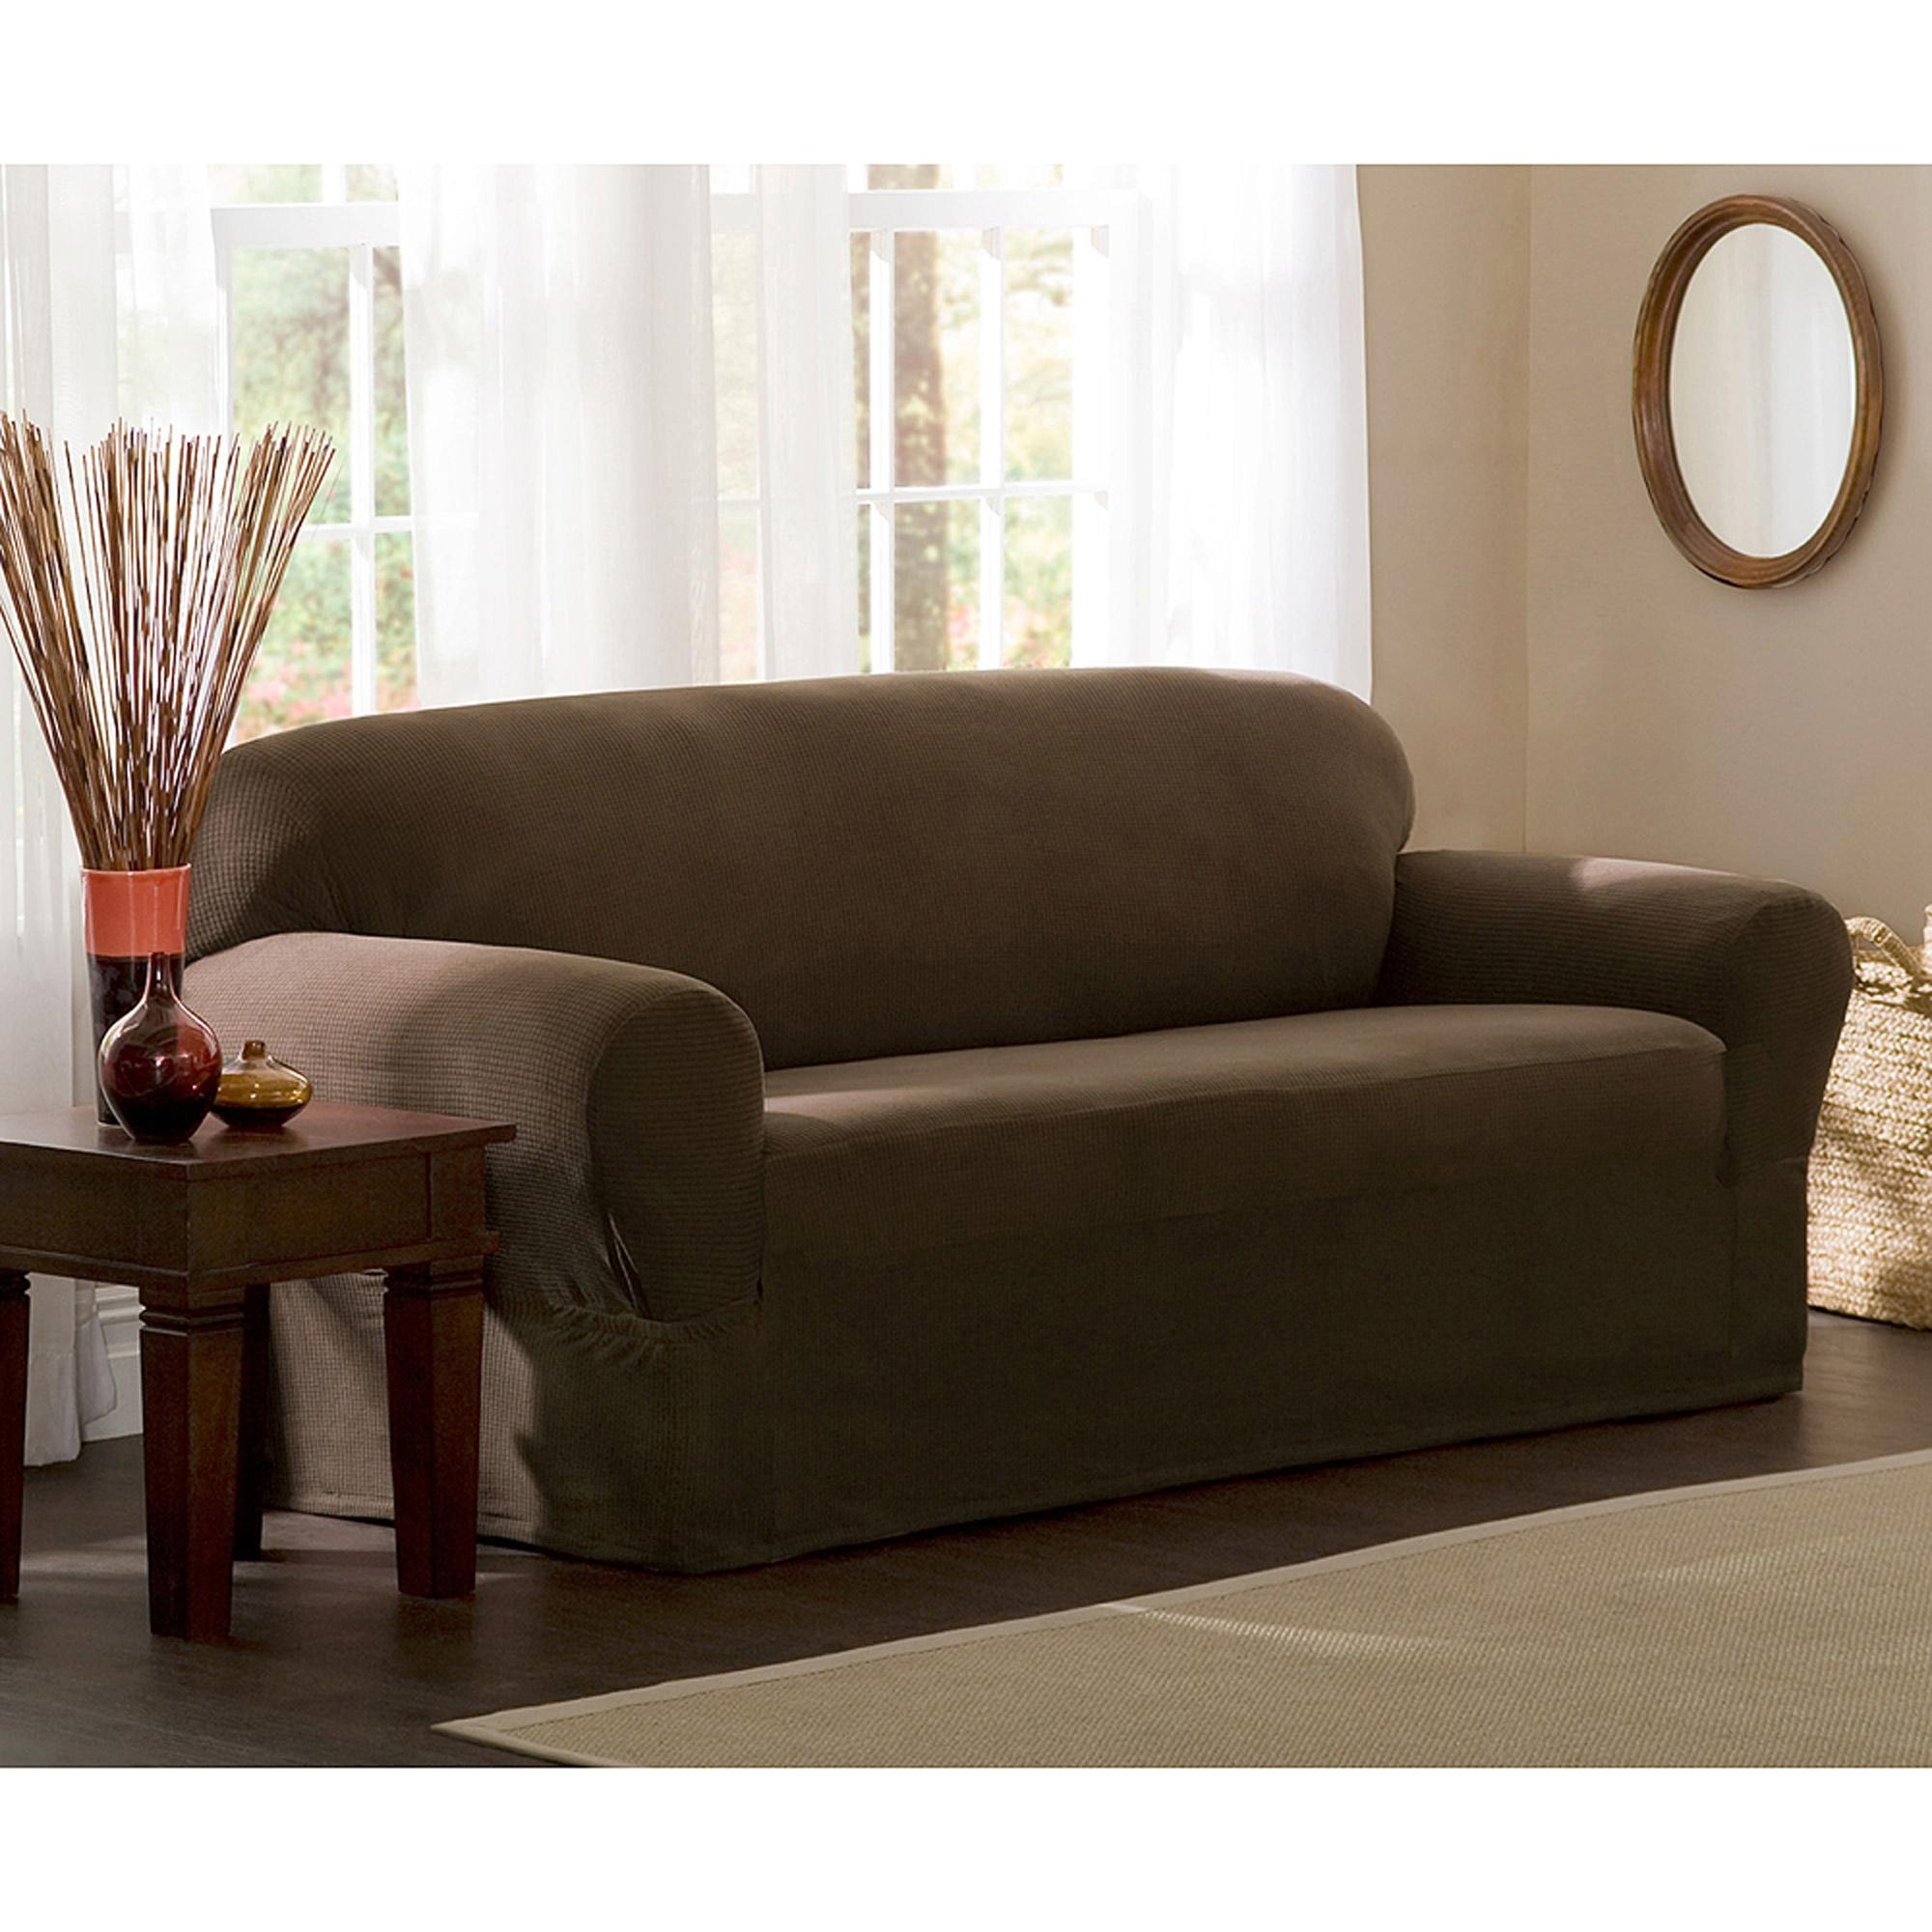 Mainstays 1 Piece Stretch Fabric Sofa Slipcover – Walmart Inside Loveseat Slipcovers T Cushion (Image 13 of 20)